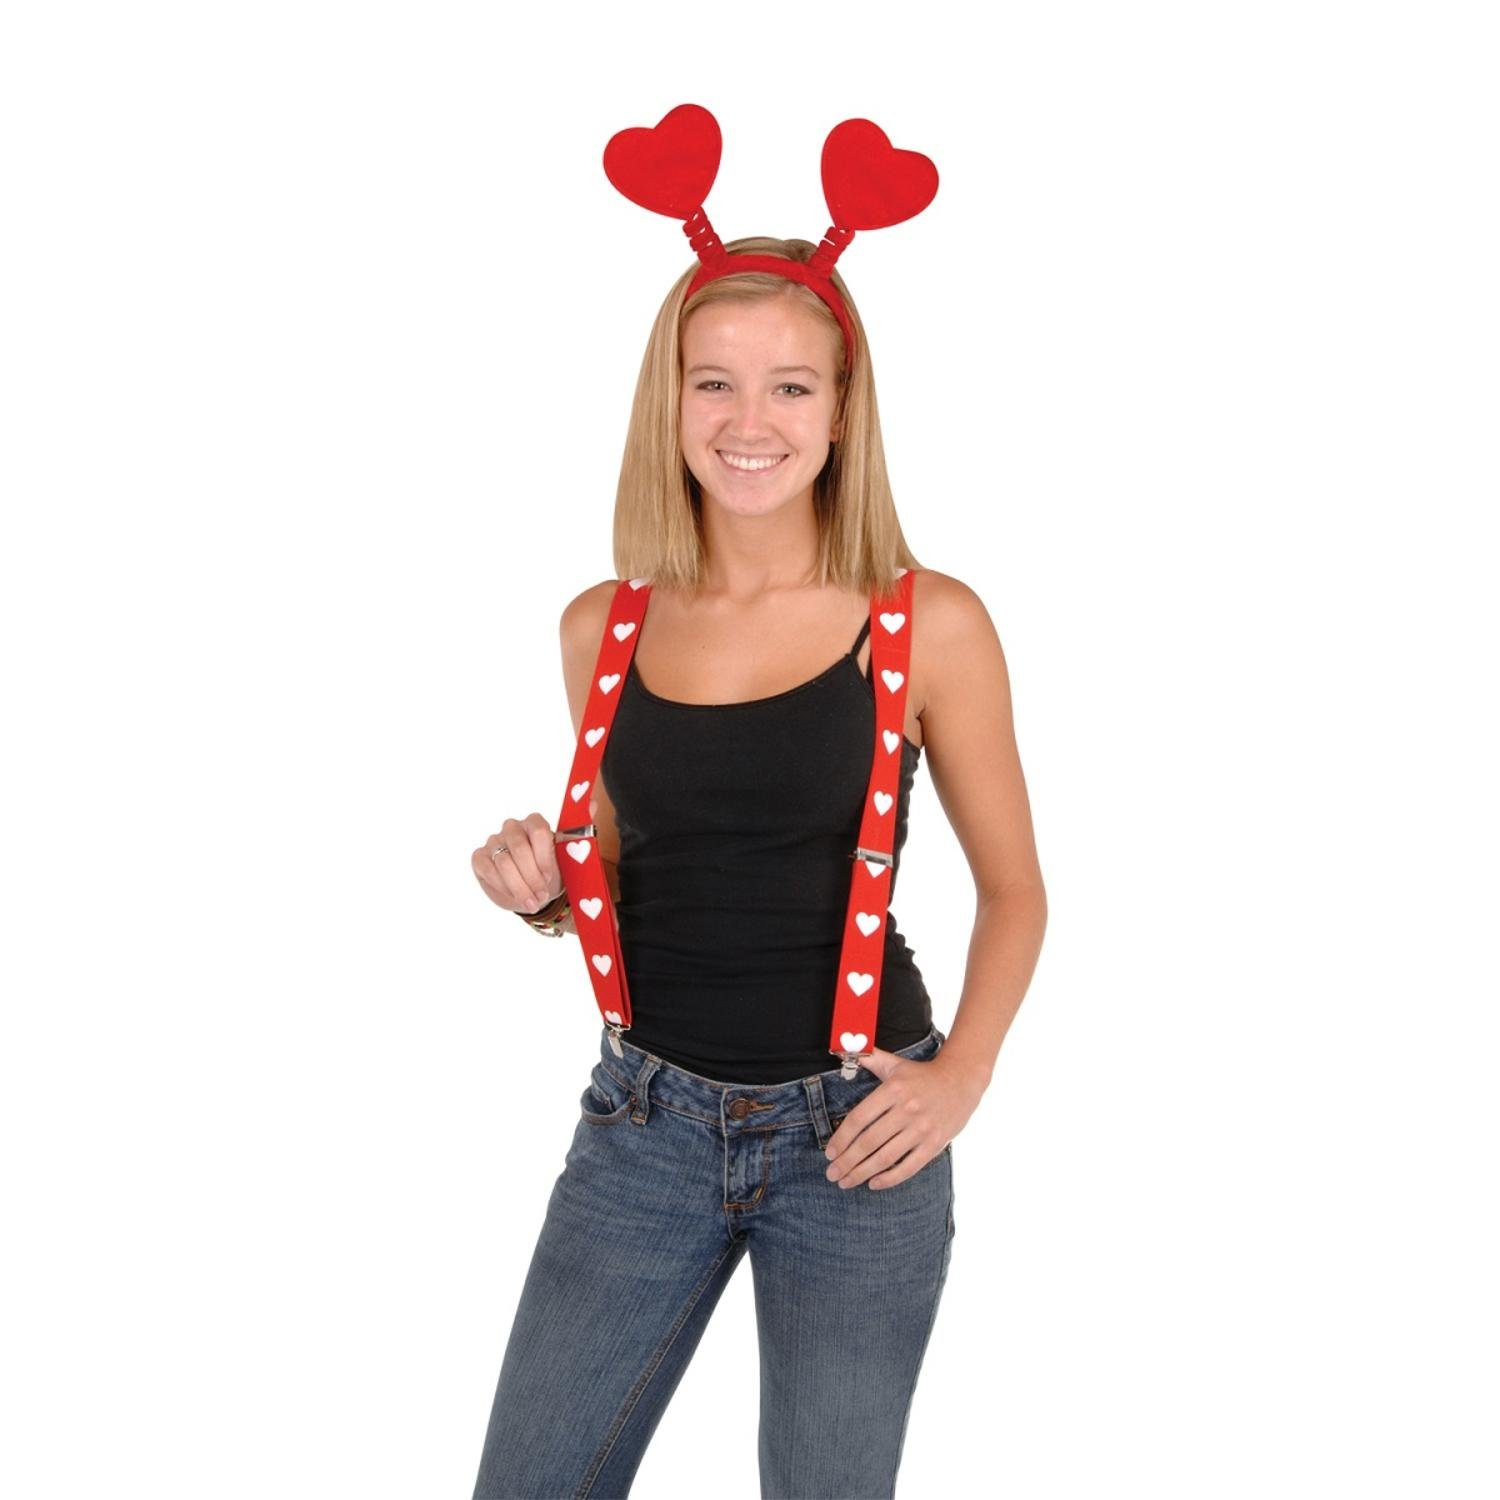 Club Pack of 12 Red and White Valentine's Day Adjustable Suspender Costume Accessories by Party Central